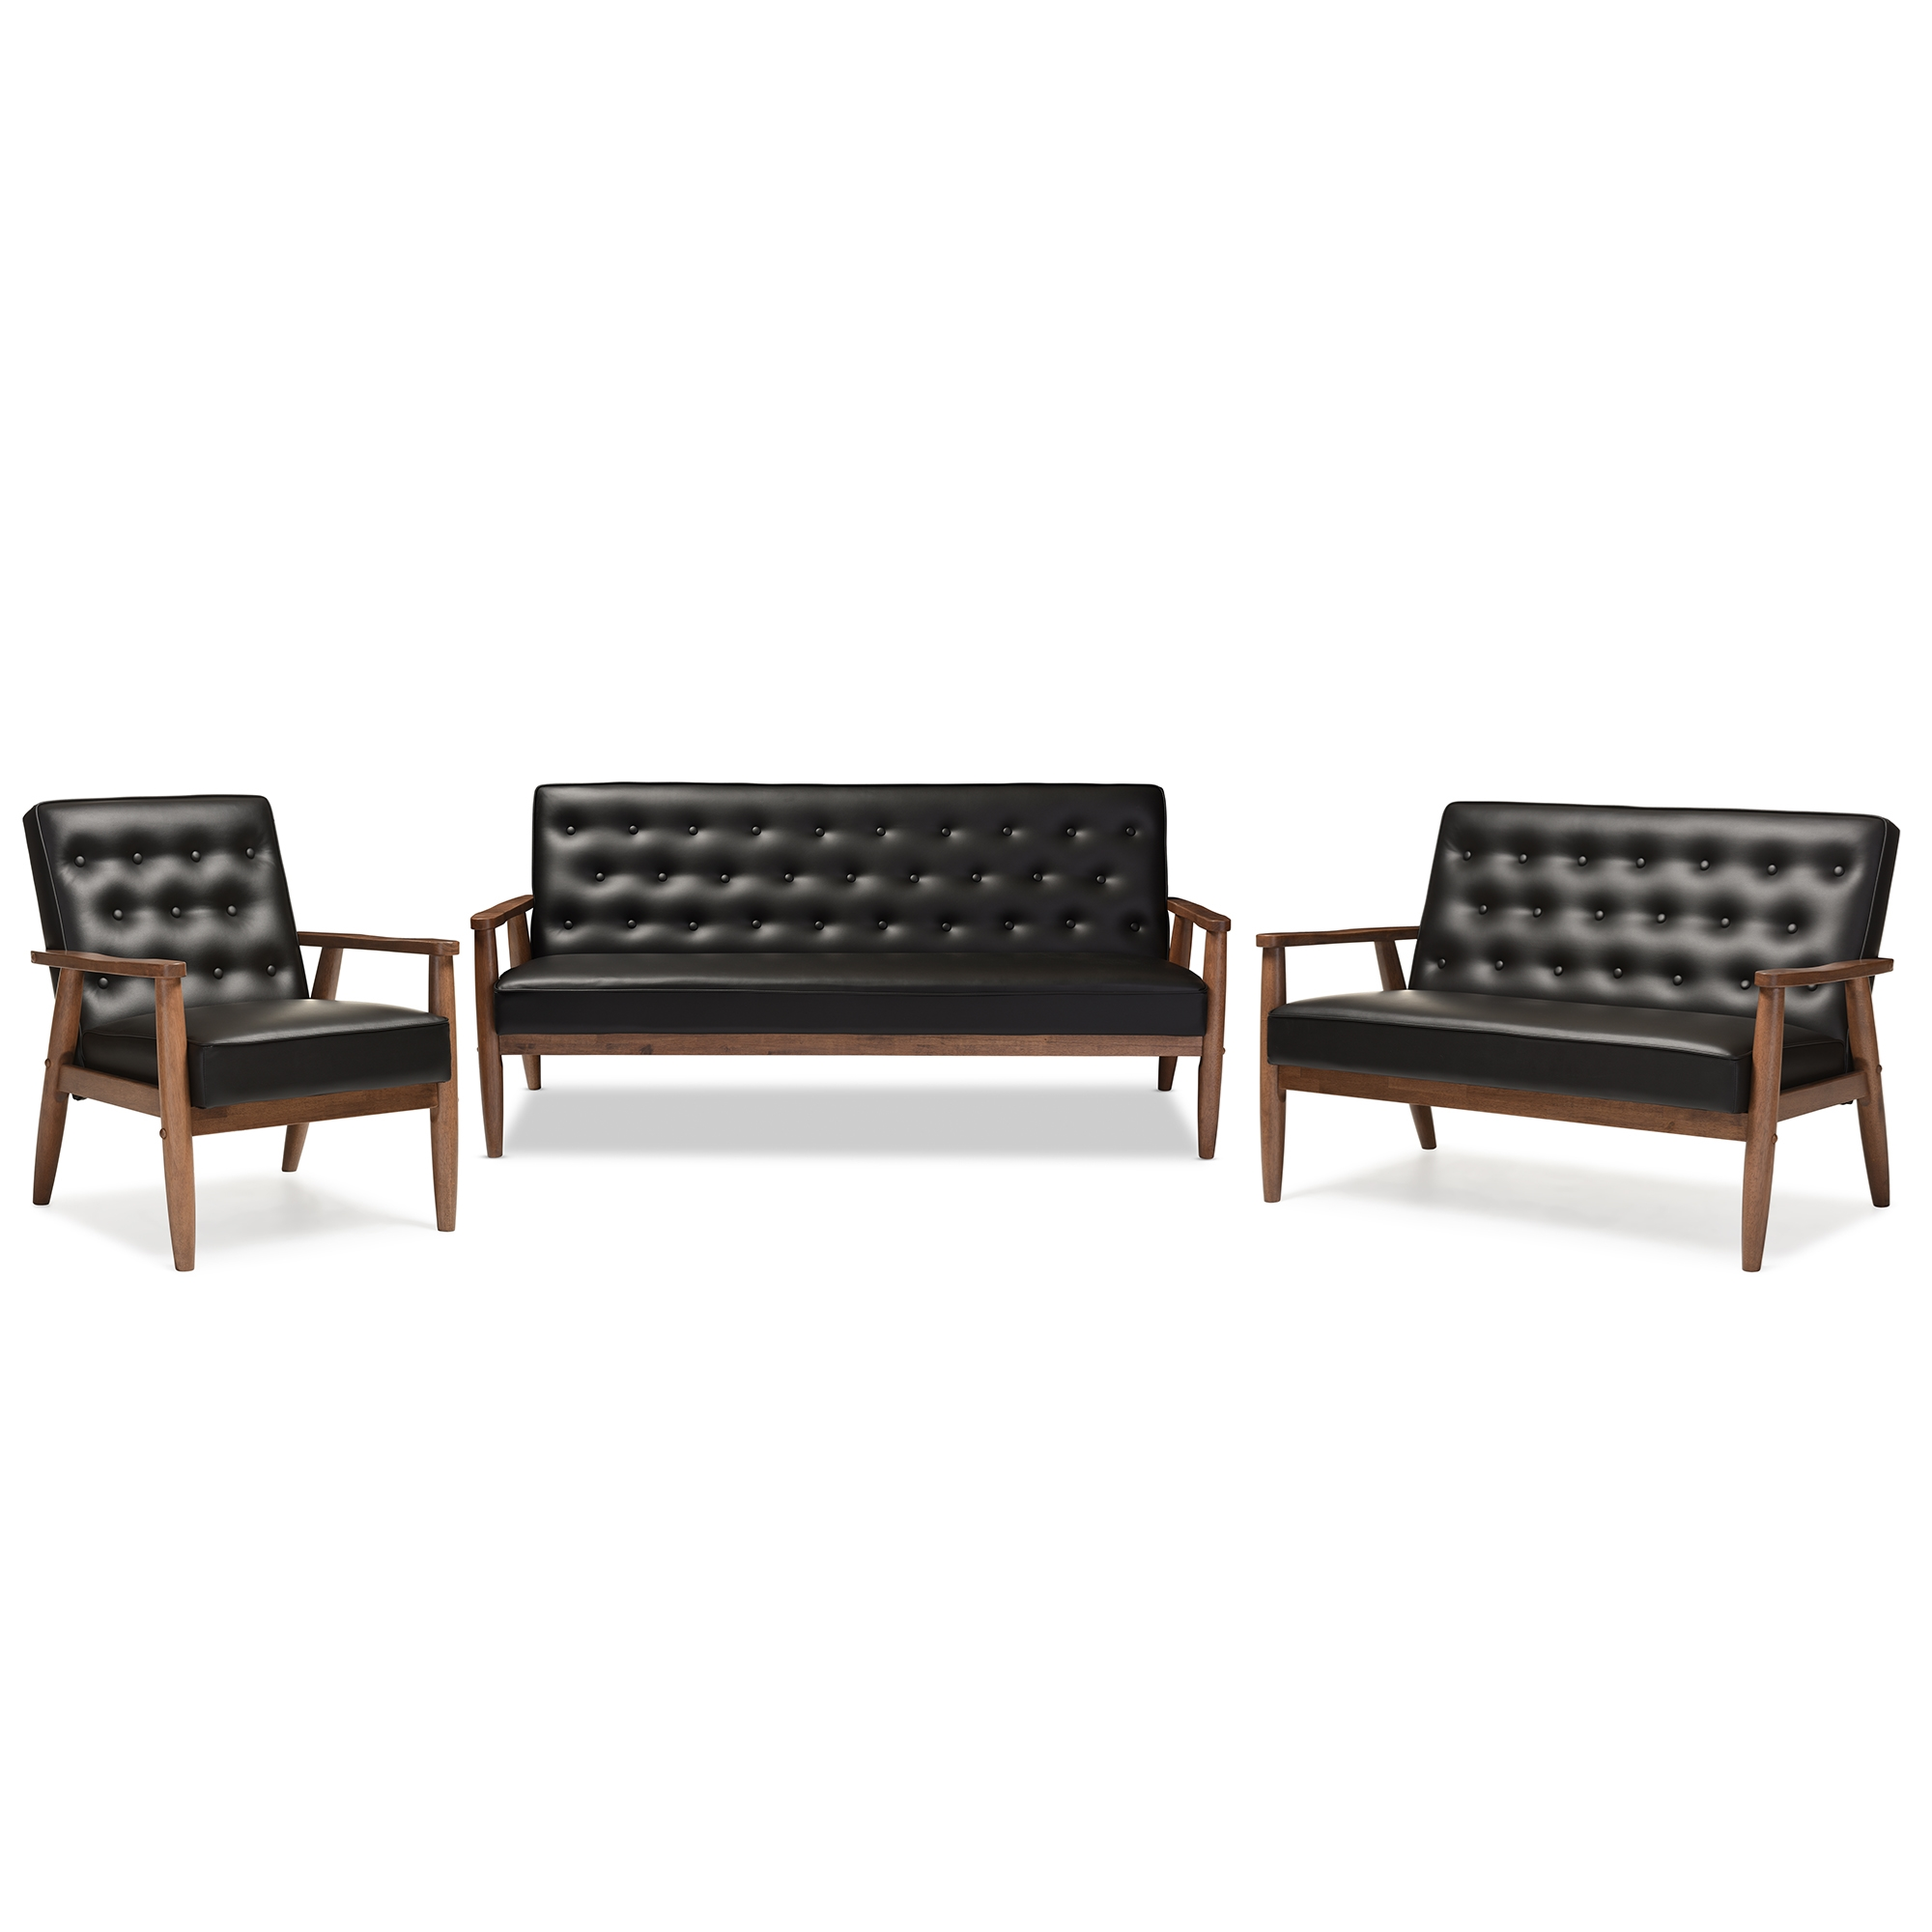 Awesome Baxton Studio Sorrento Mid Century Retro Modern Black Faux Leather  Upholstered Wooden 3 Piece Living Room Set